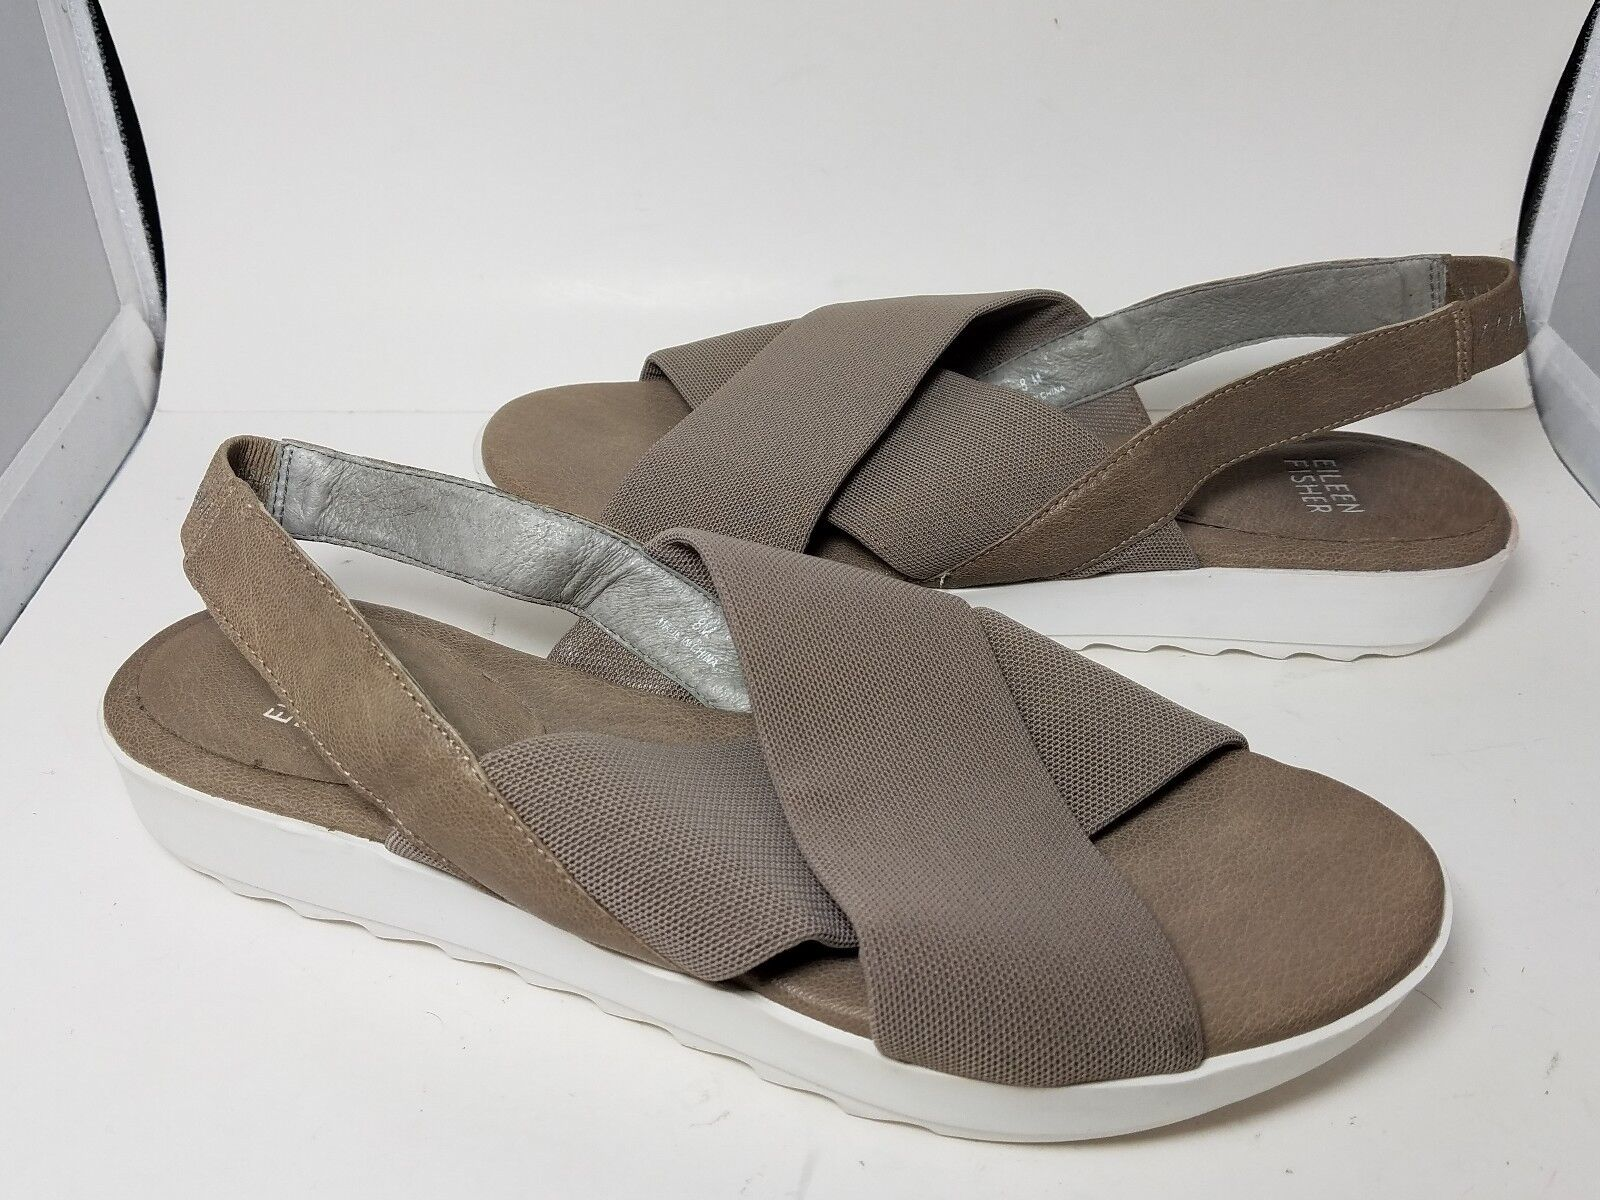 Sz 8 NEW Eileen Fisher Sandals SPA taupe Mesh  Leather Slingback Comfort shoes